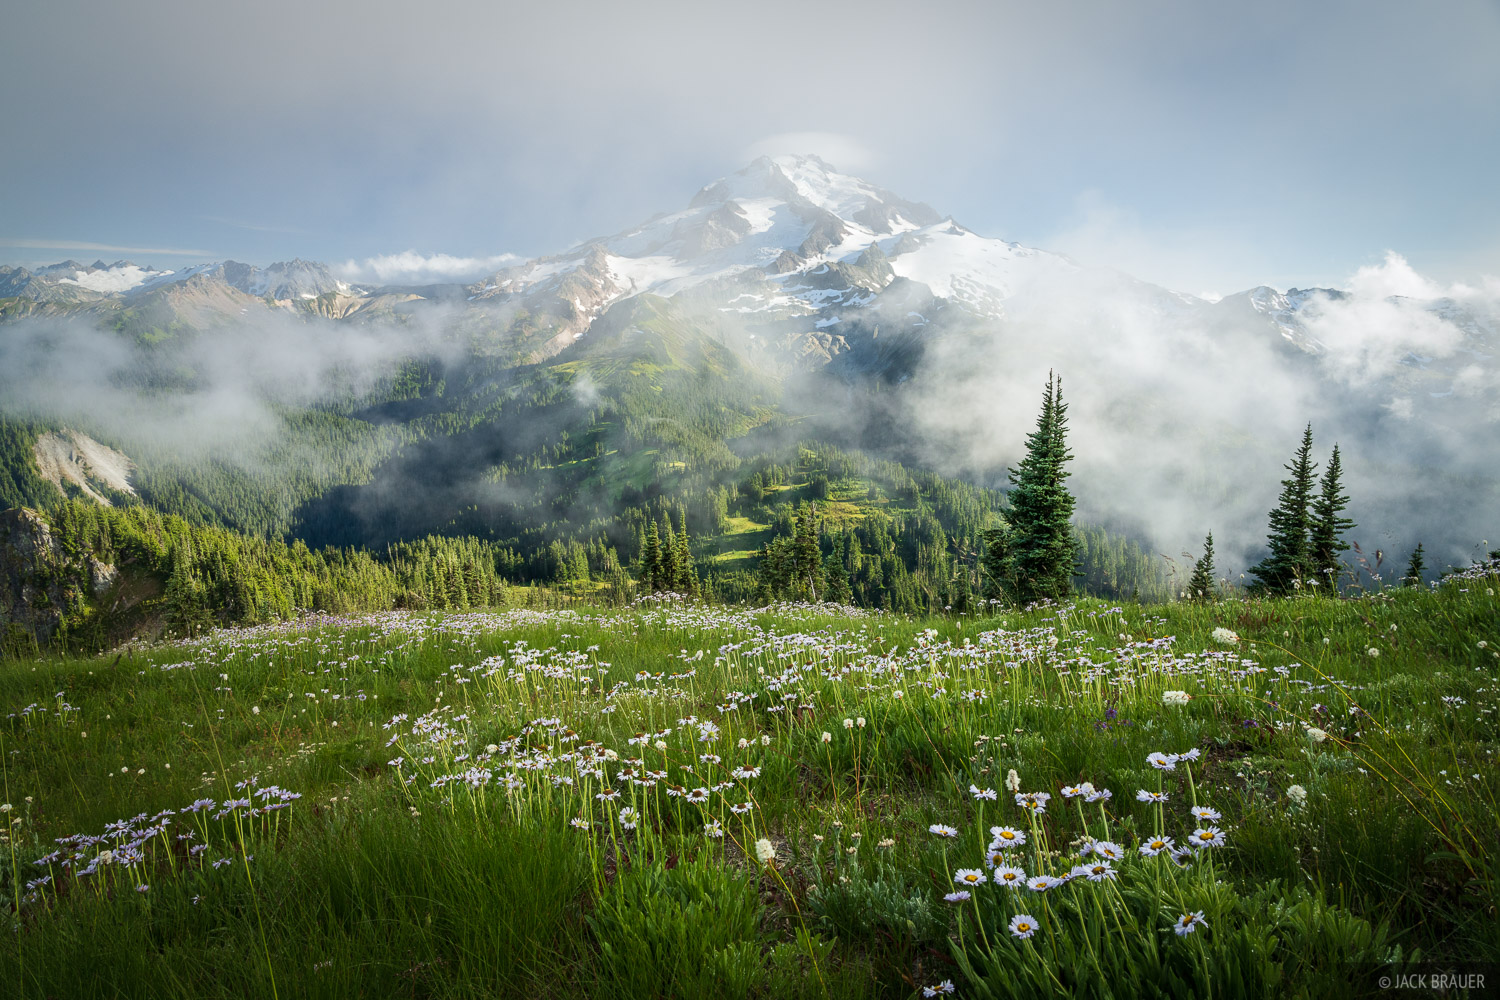 Glacier Peak, Glacier Peak Wilderness, Grassy Ridge, Washington, wildflowers, Cascades, photo